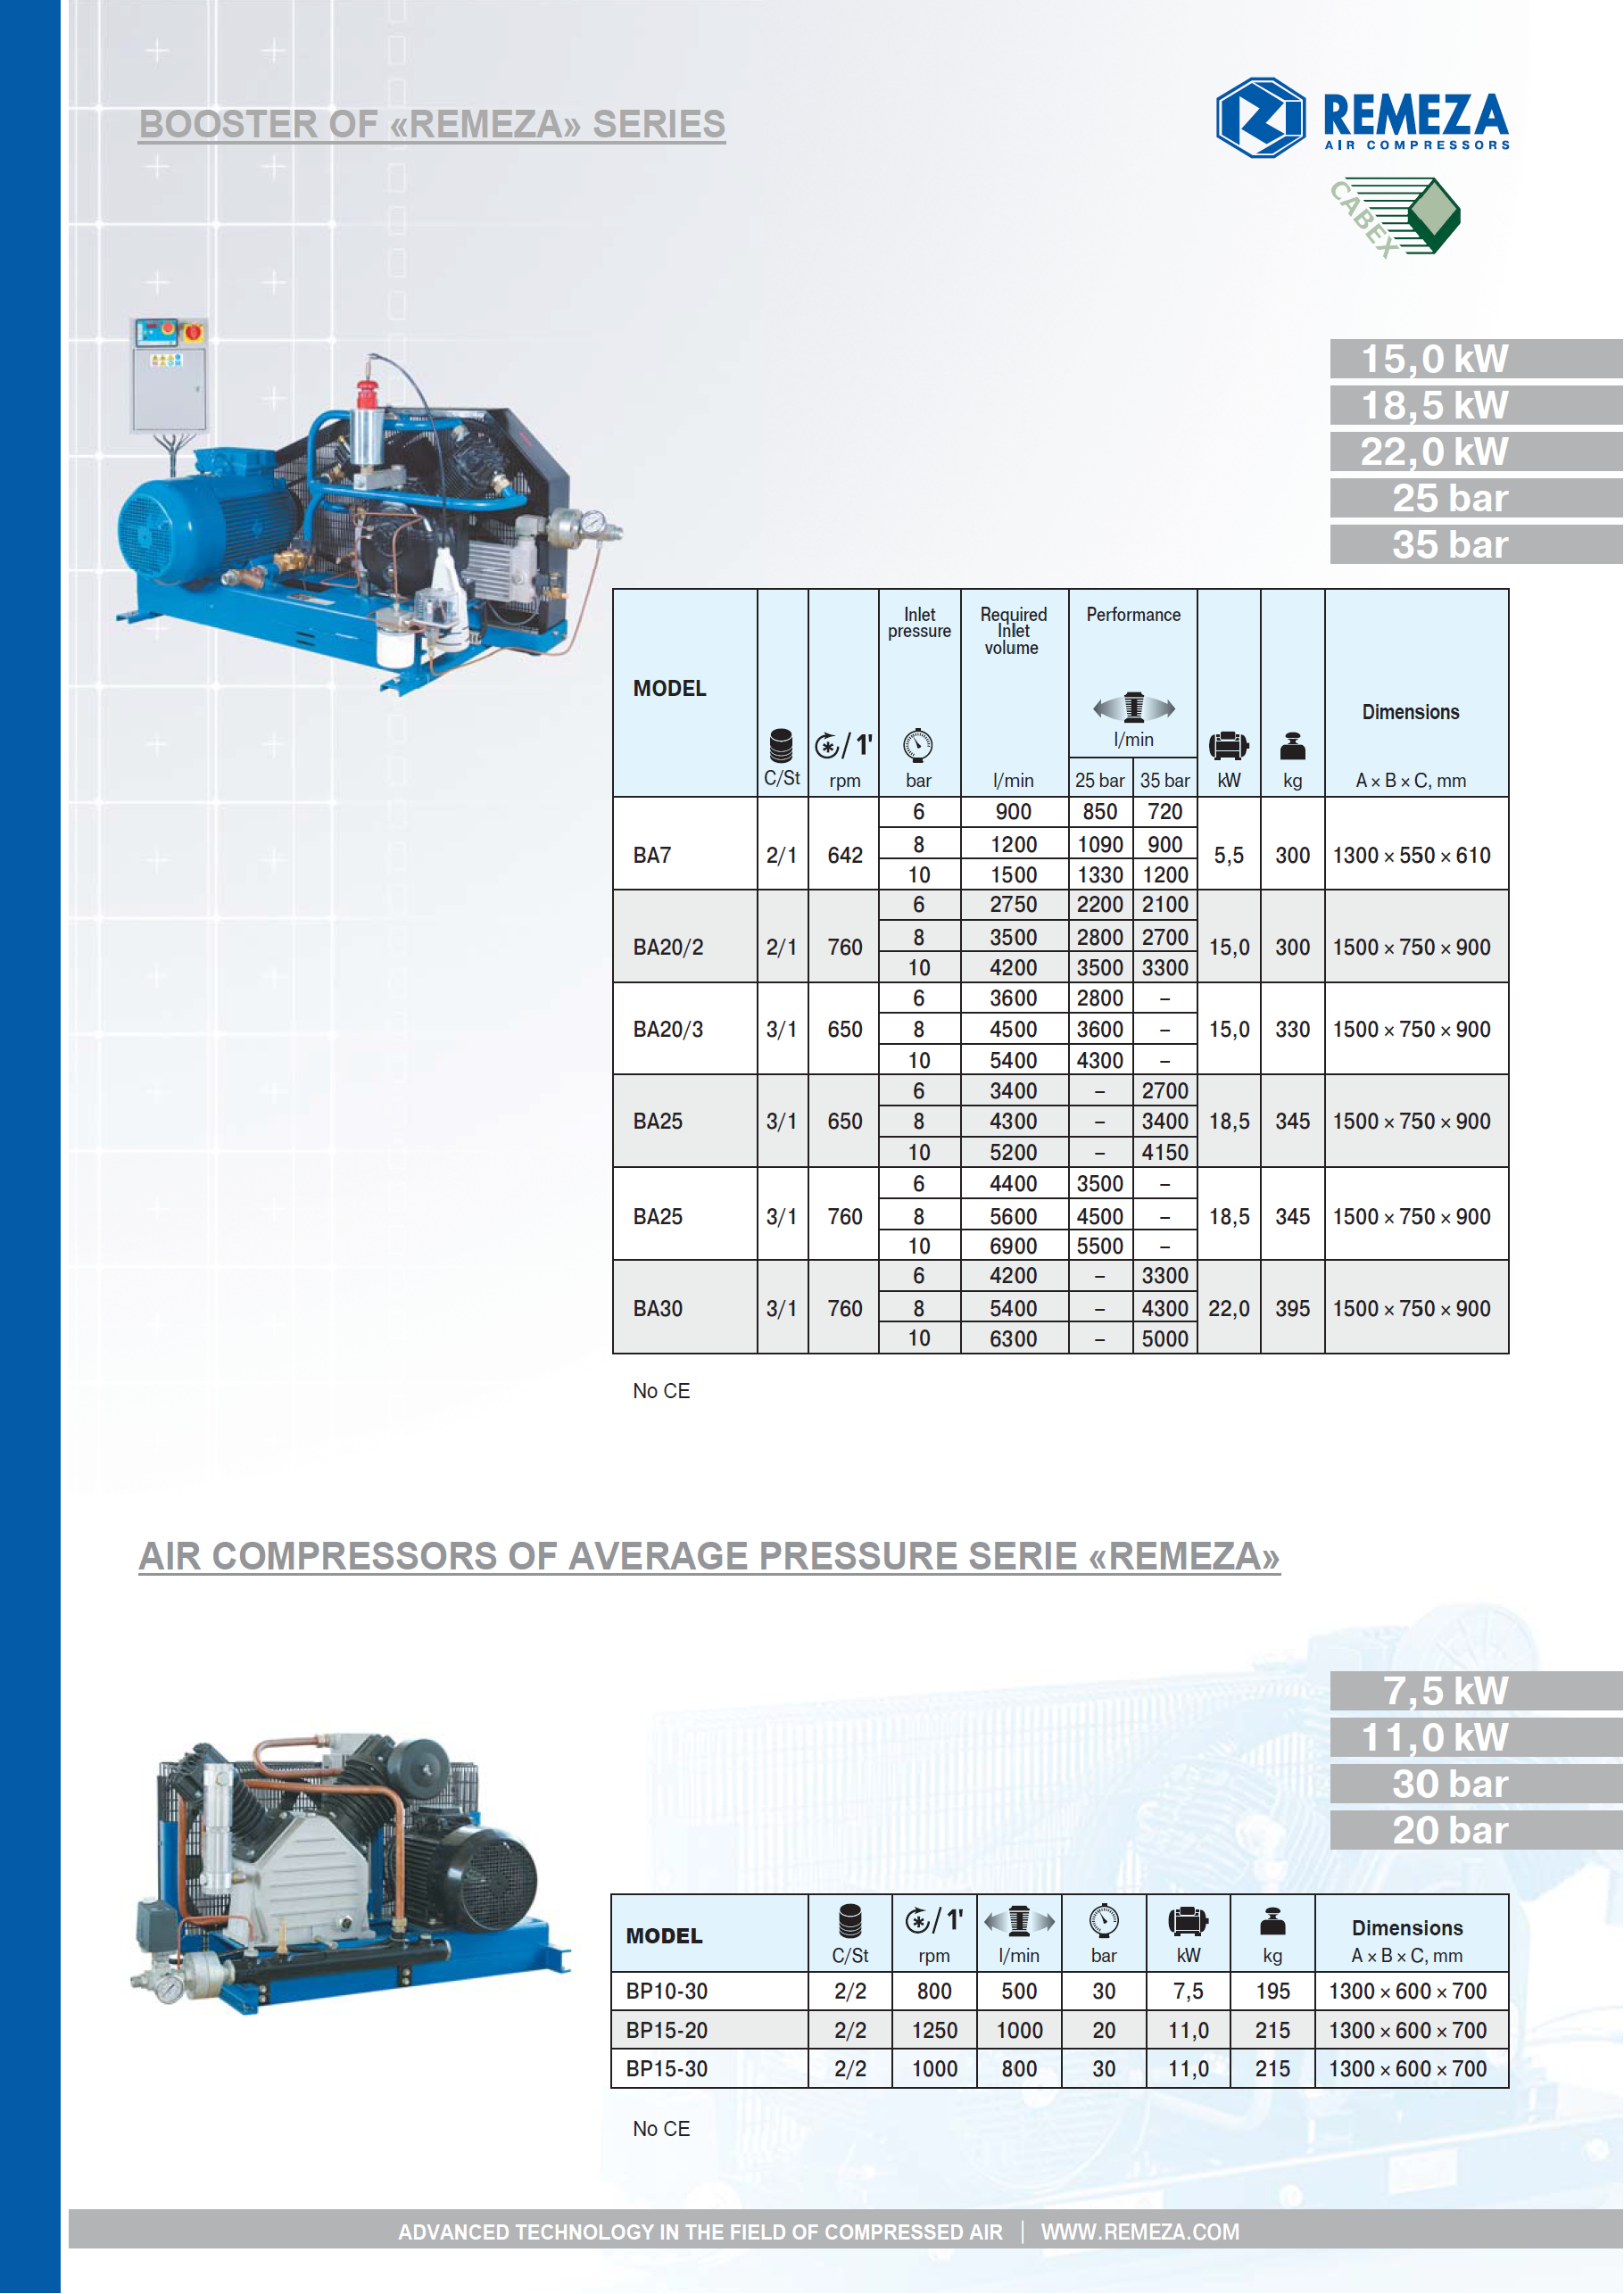 4_air-compressors-of-average-pressure-remeza_pag_1